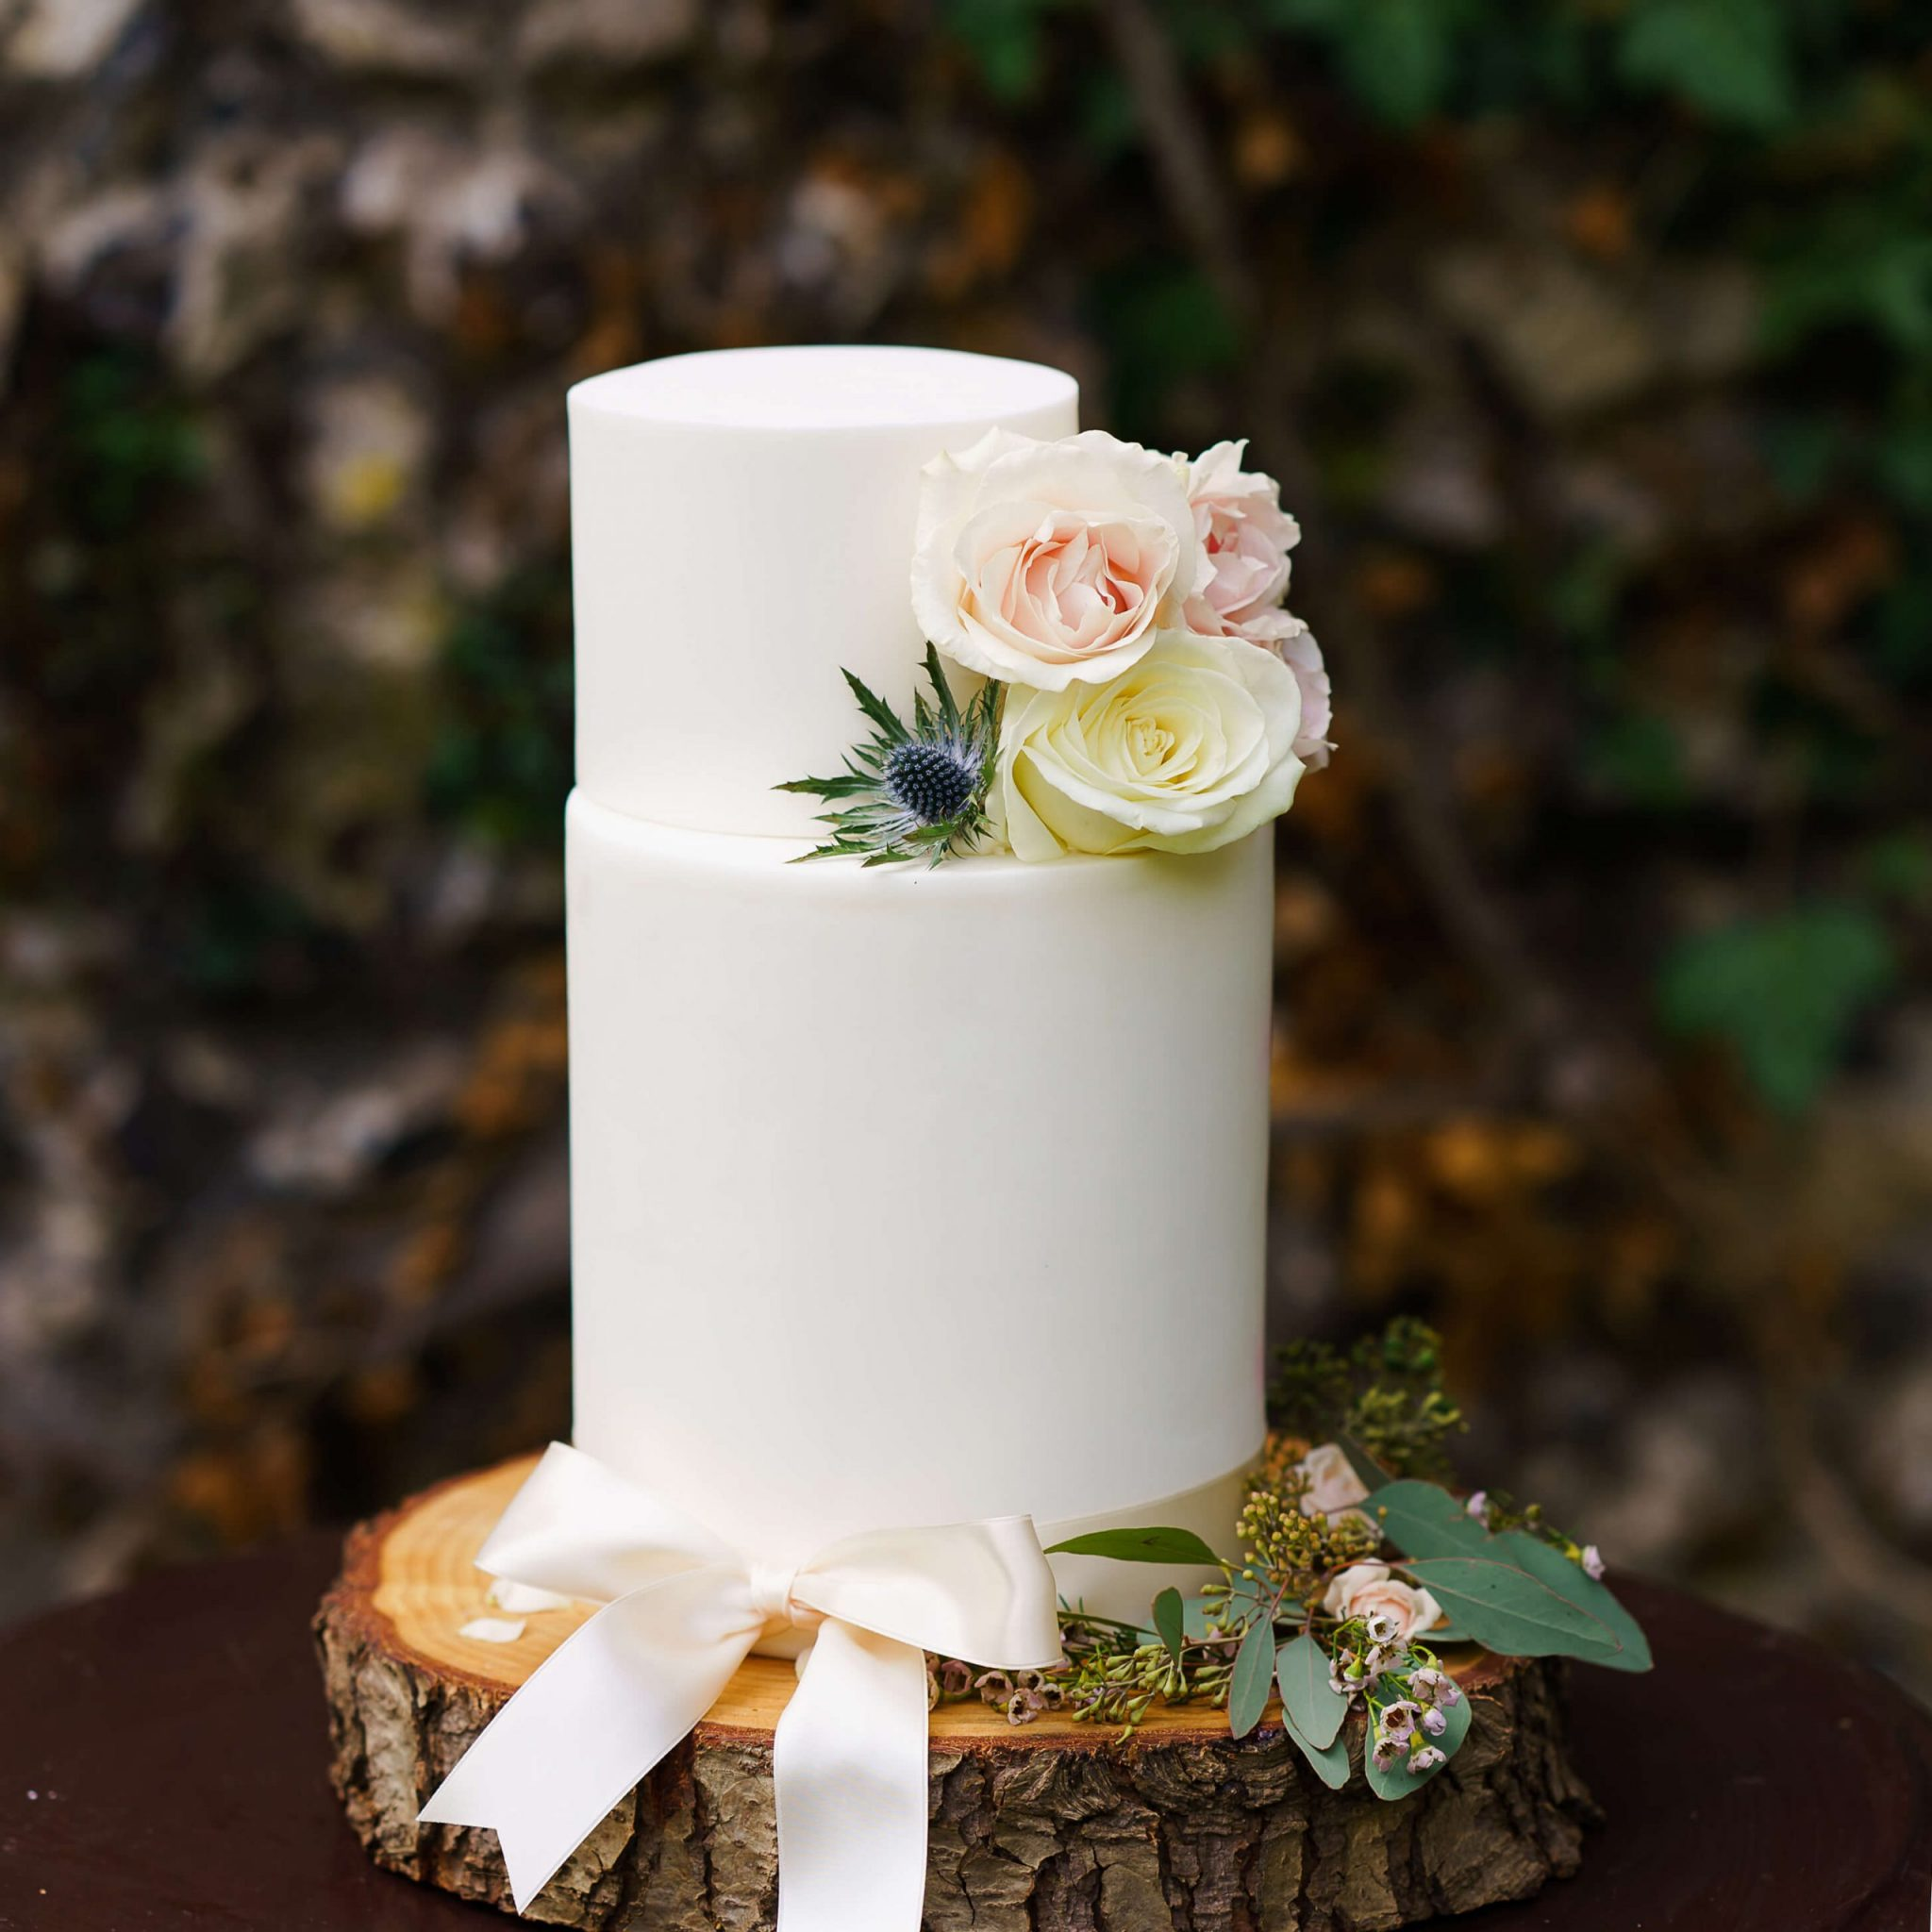 2 Tier White Wedding Cake with Fresh Flowers in Front of Garden Wall